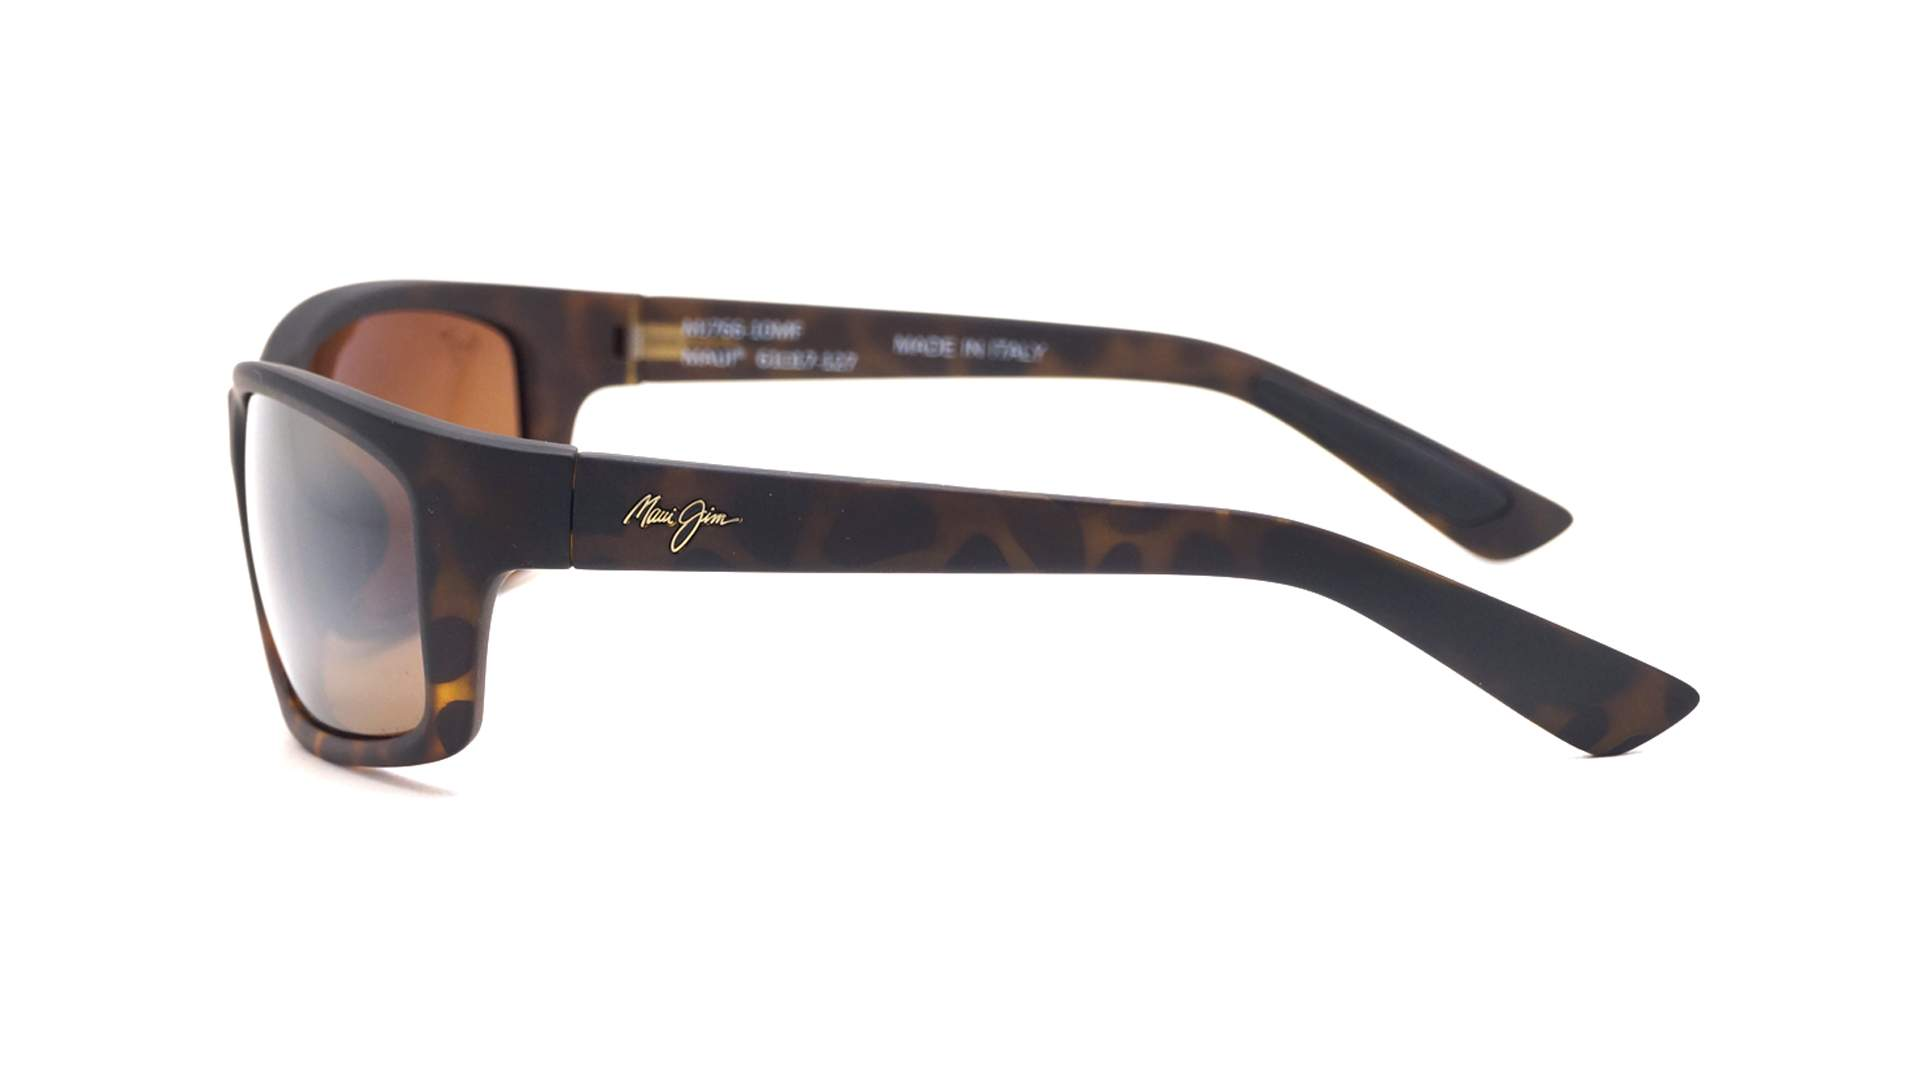 ca568e5f29264 Sunglasses Maui Jim Kanaio coast Tortoise Matte Super thin glass H76610MF  61-17 Large Polarized Gradient Mirror